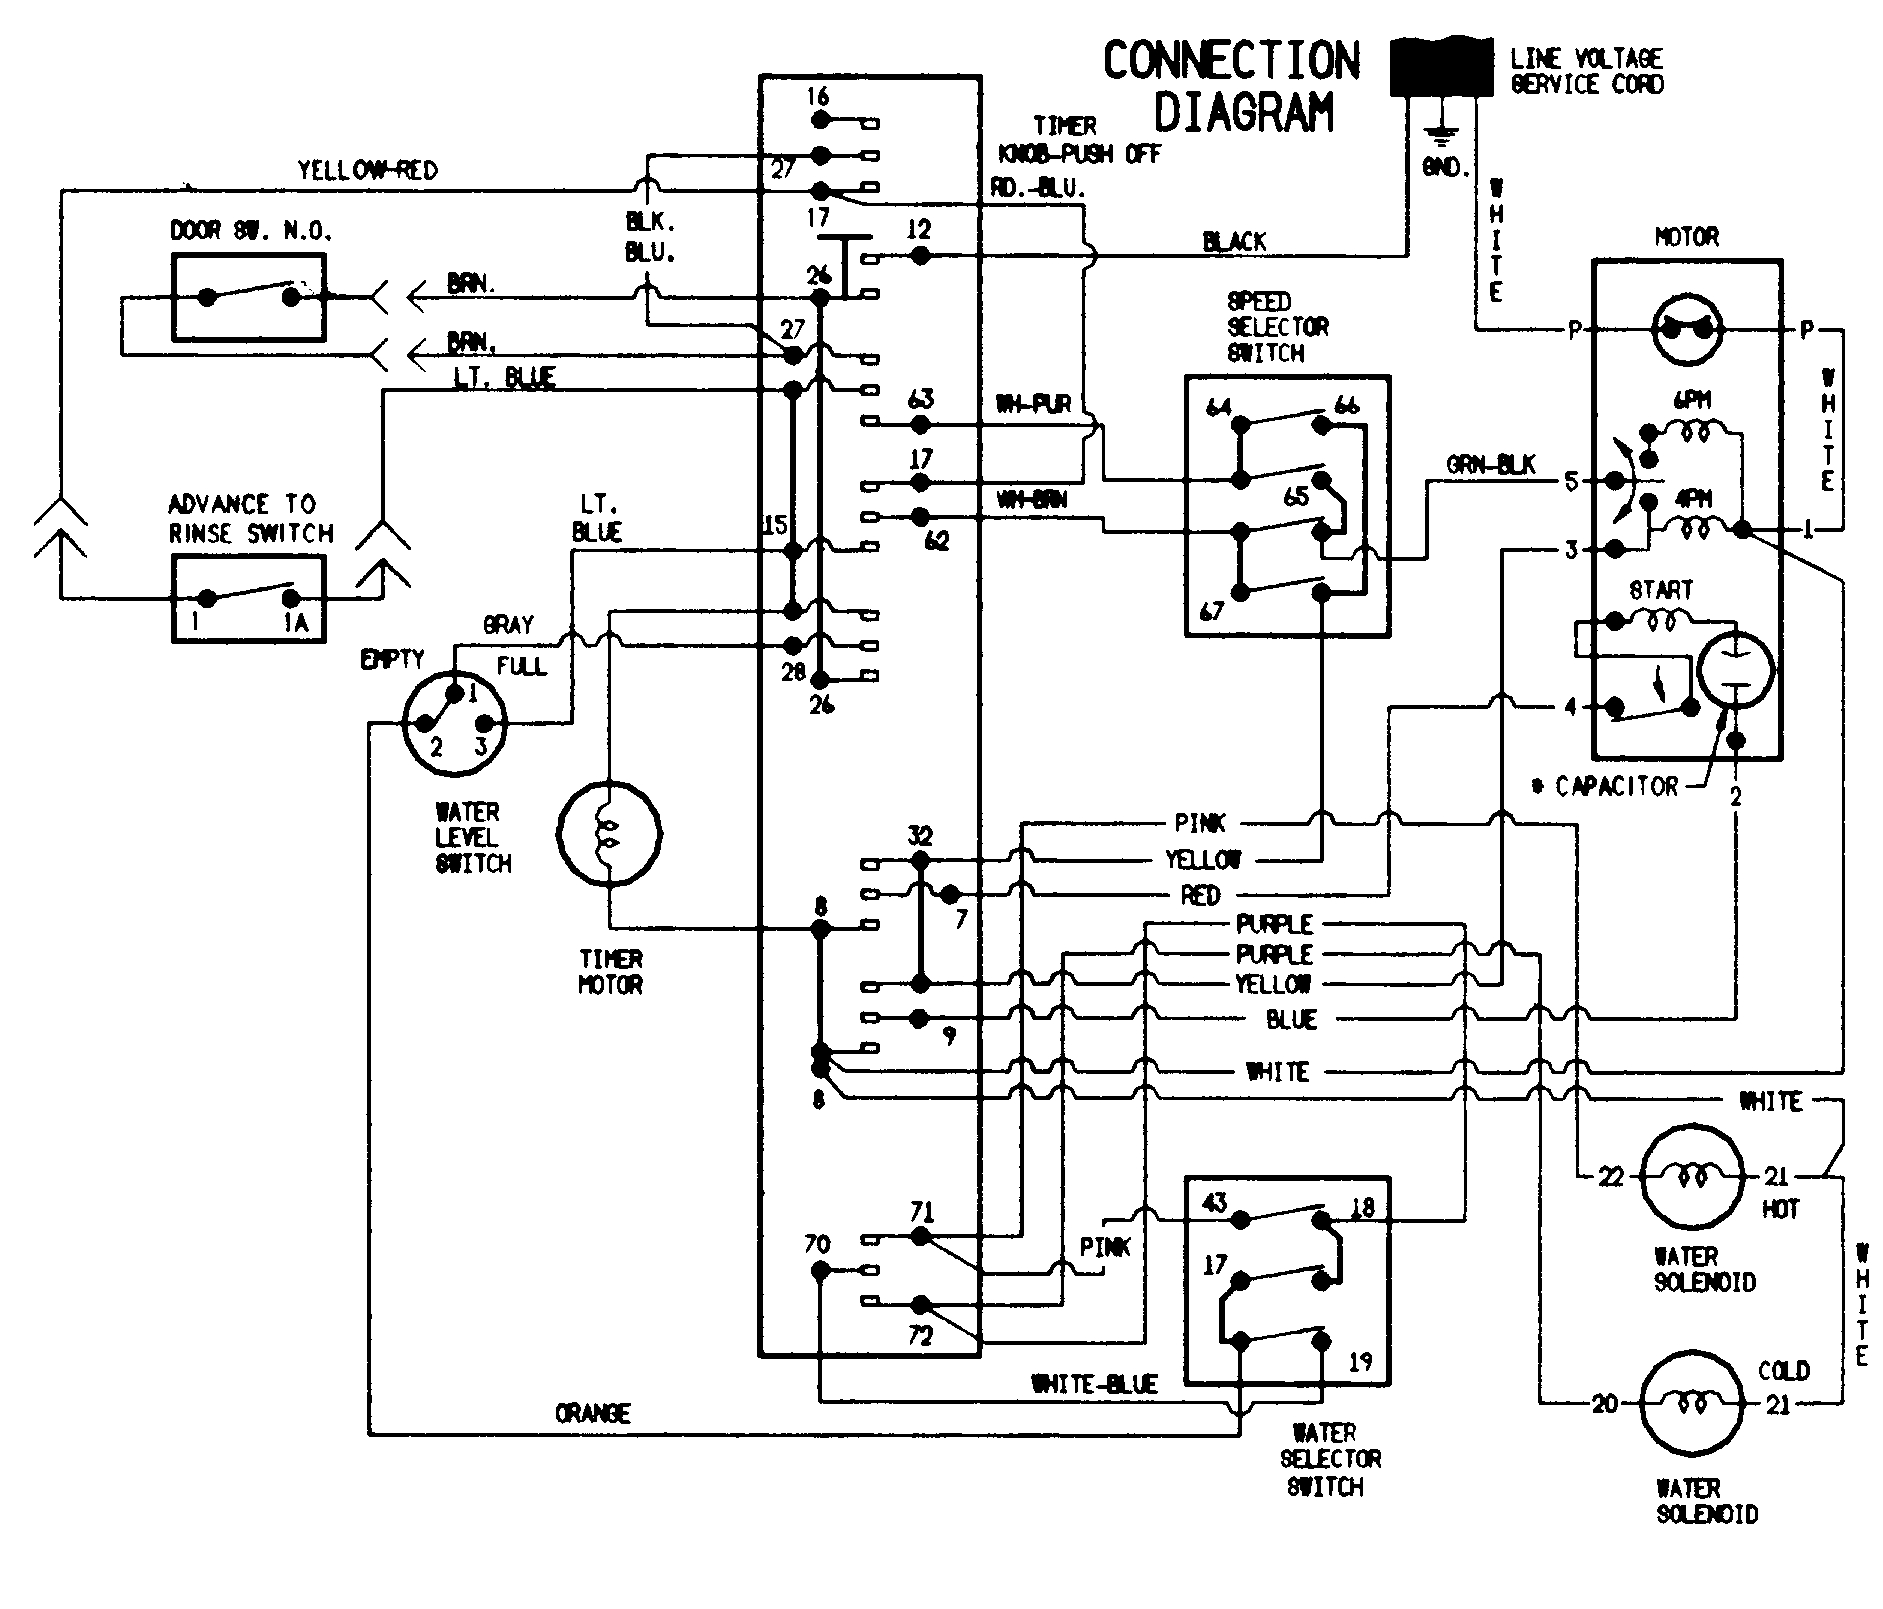 hight resolution of wiring diagram pictures detail name whirlpool duet dryer heating element wiring diagram whirlpool duet dryer